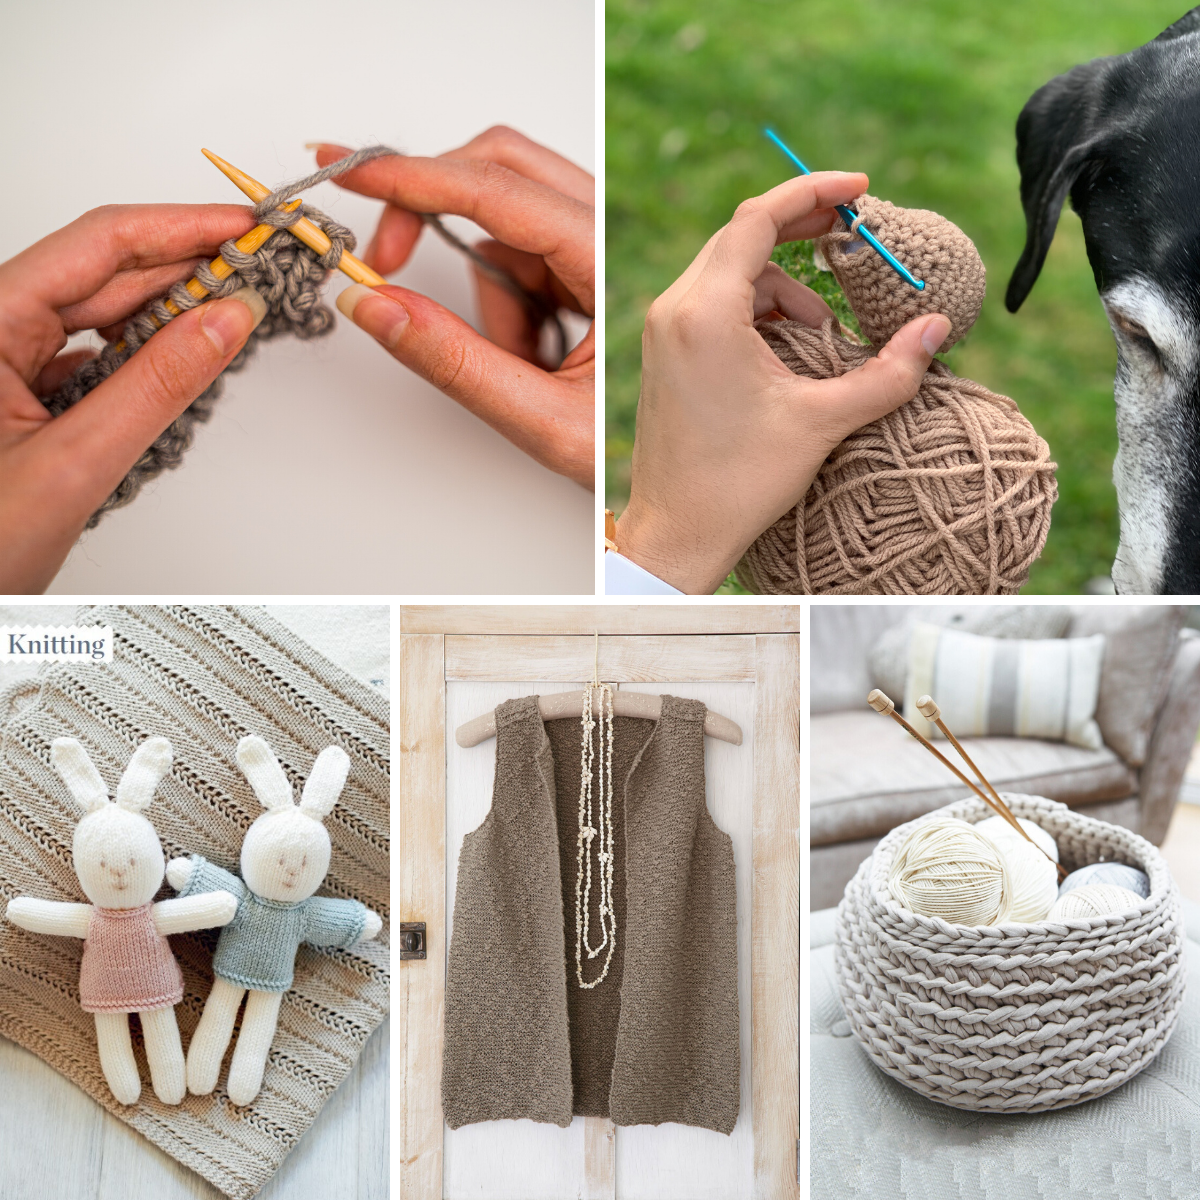 Knitting & Crocheting: the health and wellbeing benefits